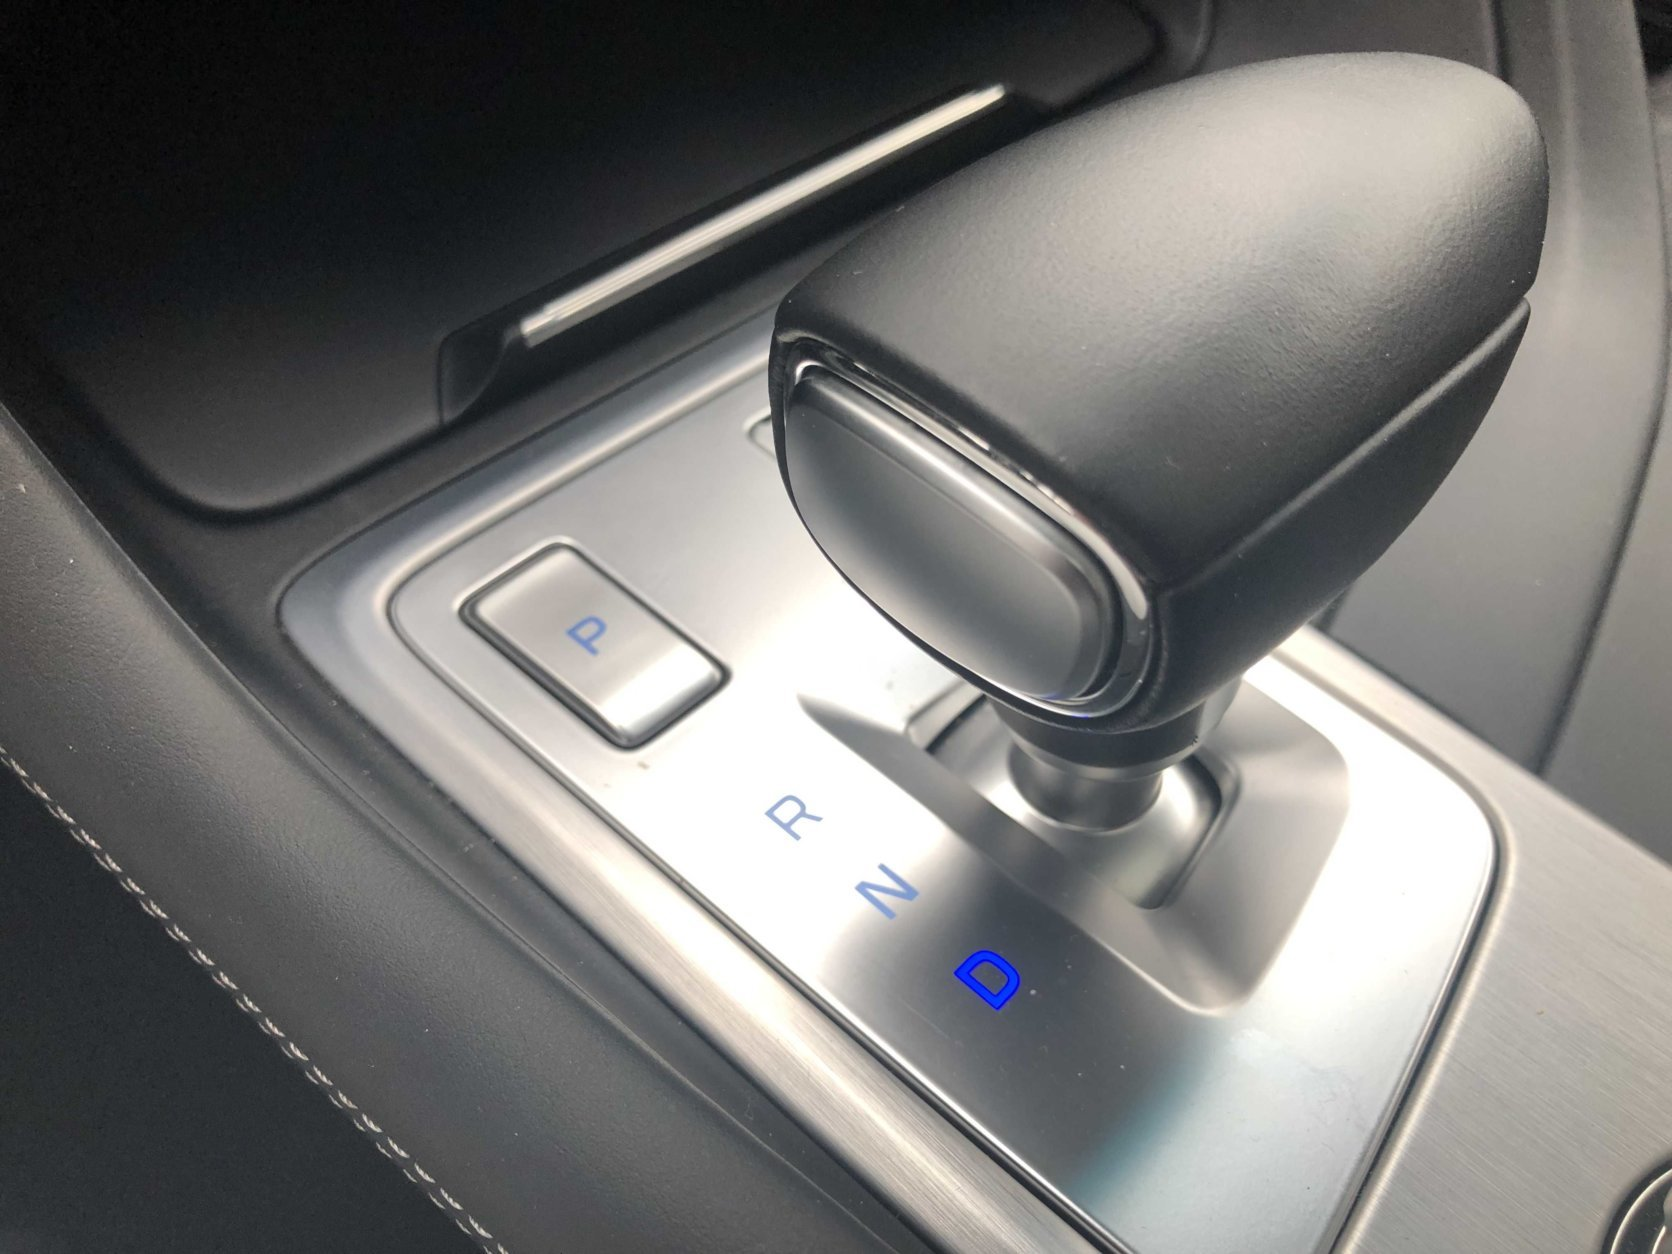 New style shift by wire shifter changes the normal park at the top to a push button. (WTOP/Mike Parris)